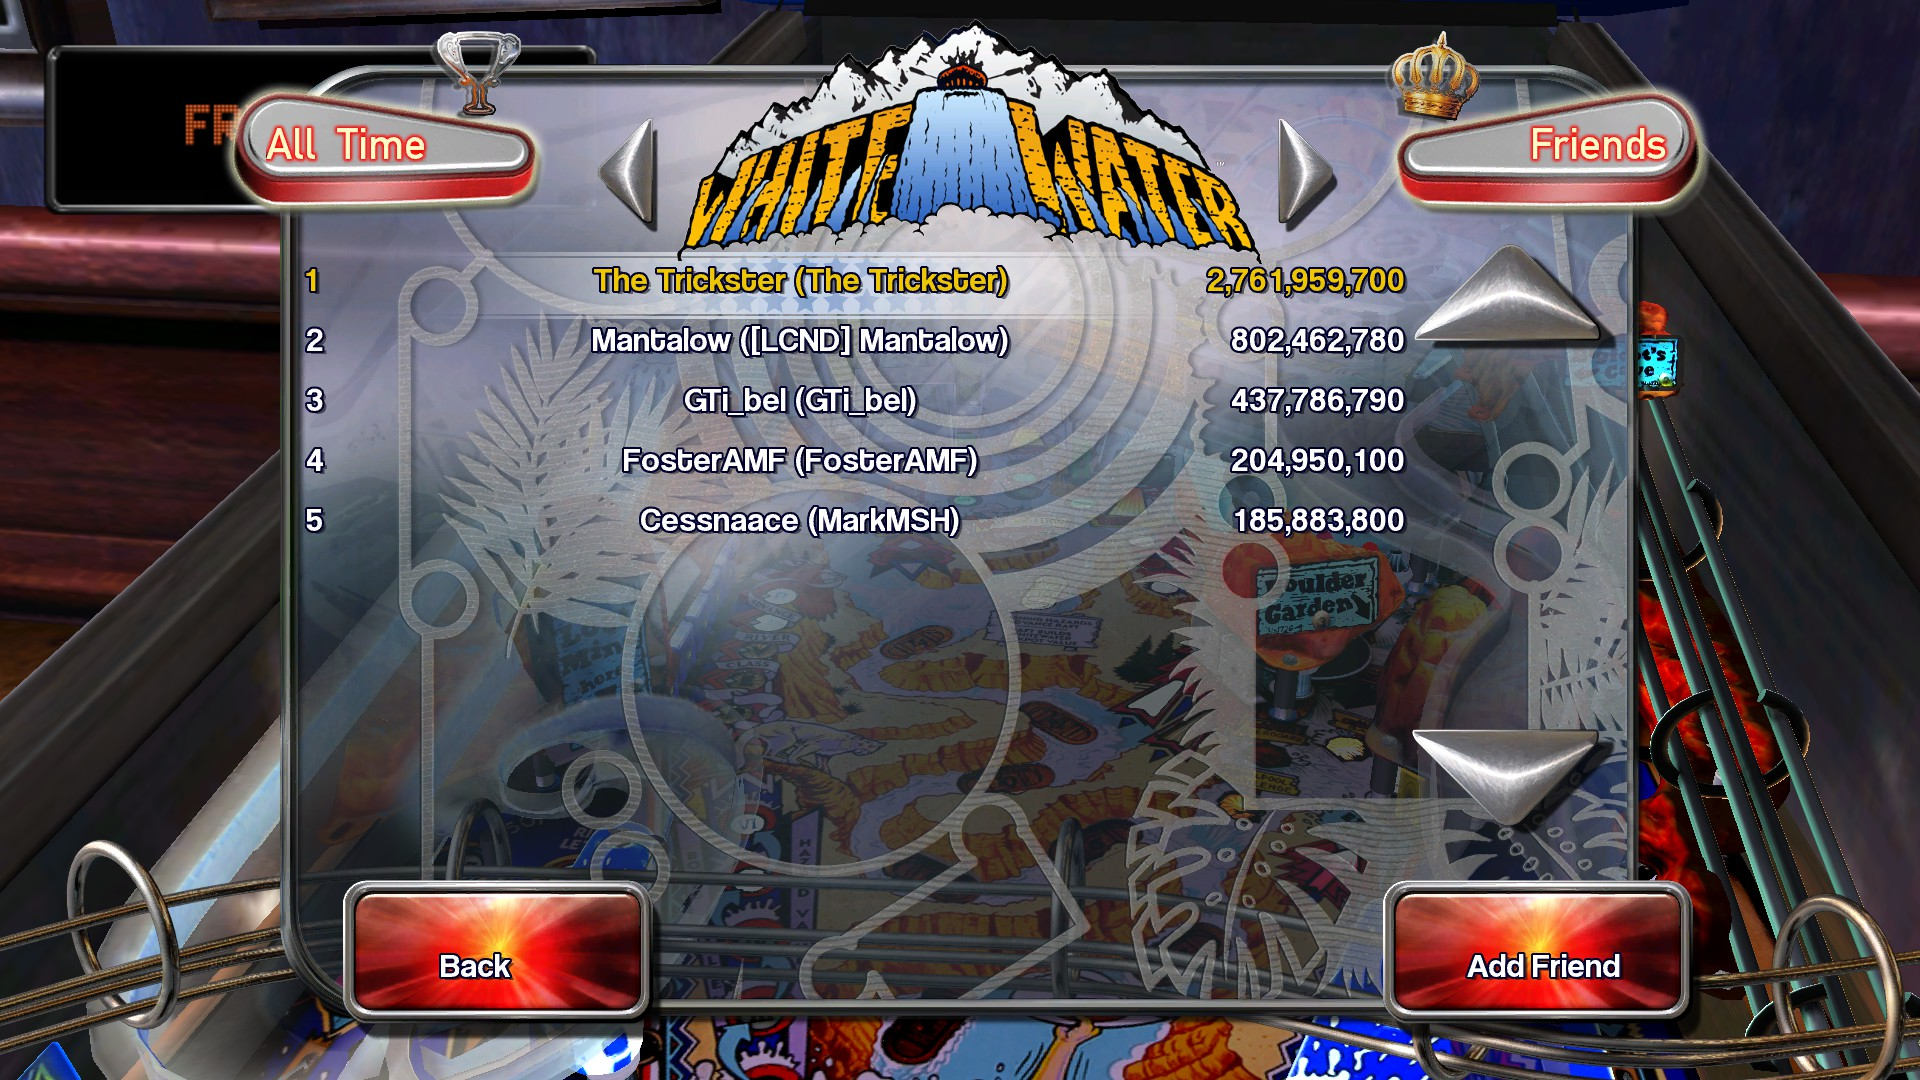 TheTrickster: Pinball Arcade: White Water (PC) 2,761,959,700 points on 2016-04-10 08:06:20